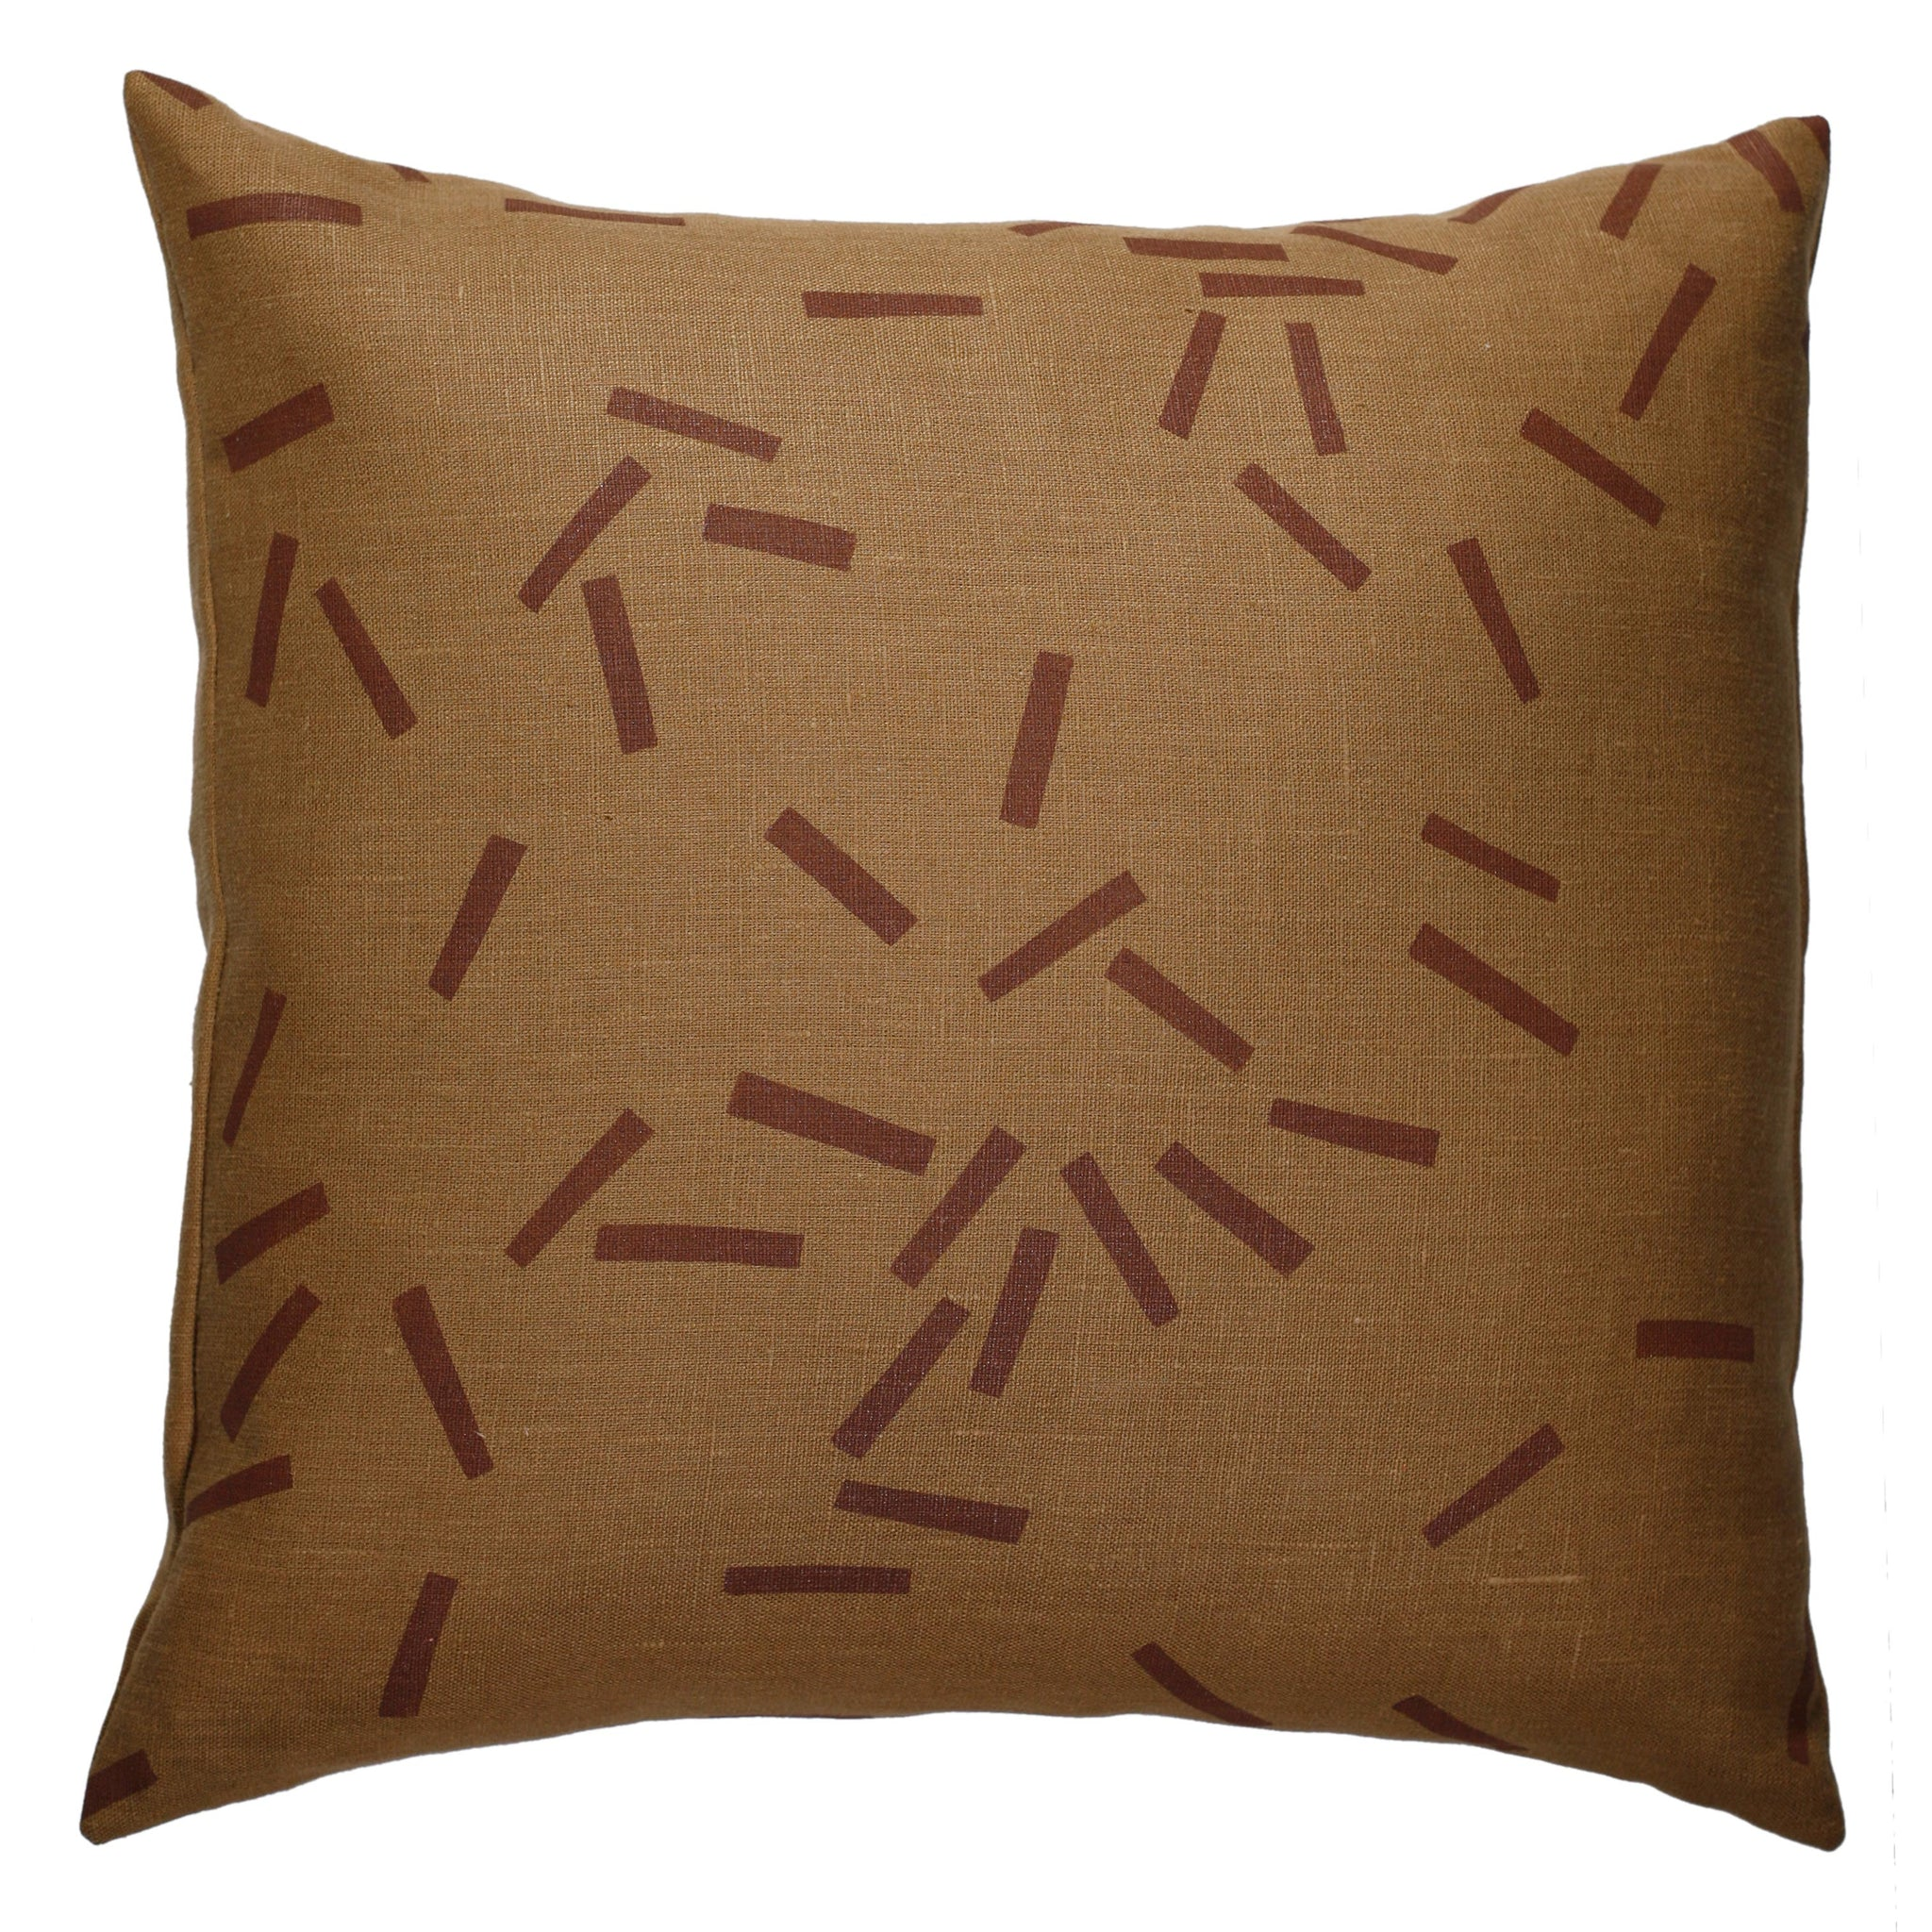 'Toss' Pillow Cover - Square